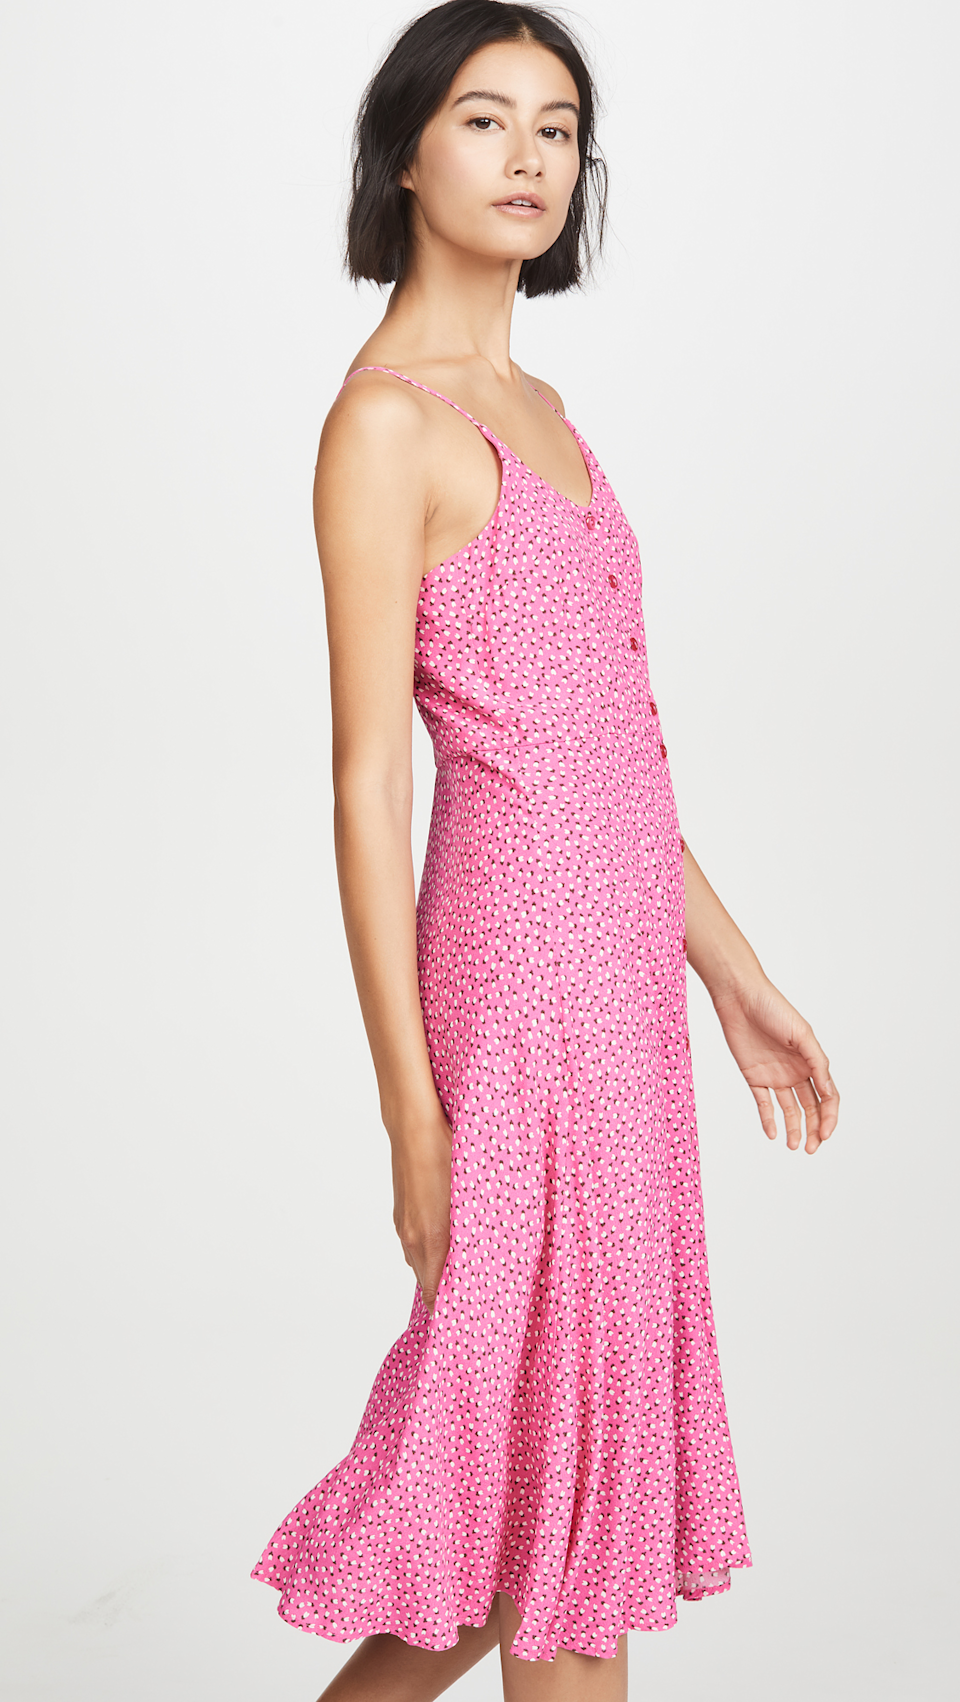 """Score <a href=""""https://www.shopbop.com/shop-category-sale-clothing-dresses/br/v=1/15412.htm"""" rel=""""nofollow noopener"""" target=""""_blank"""" data-ylk=""""slk:up to 60% off"""" class=""""link rapid-noclick-resp"""">up to 60% off</a> at Shopbop's summer kickoff sale. <br> <br> <strong>Rolla's</strong> Midsummer Mini Tulip Dress, $, available at <a href=""""https://go.skimresources.com/?id=30283X879131&url=https%3A%2F%2Fwww.shopbop.com%2Fmidsummer-mini-tulips-dress-rollas%2Fvp%2Fv%3D1%2F1571926434.htm%3F"""" rel=""""nofollow noopener"""" target=""""_blank"""" data-ylk=""""slk:Shopbop"""" class=""""link rapid-noclick-resp"""">Shopbop</a>"""